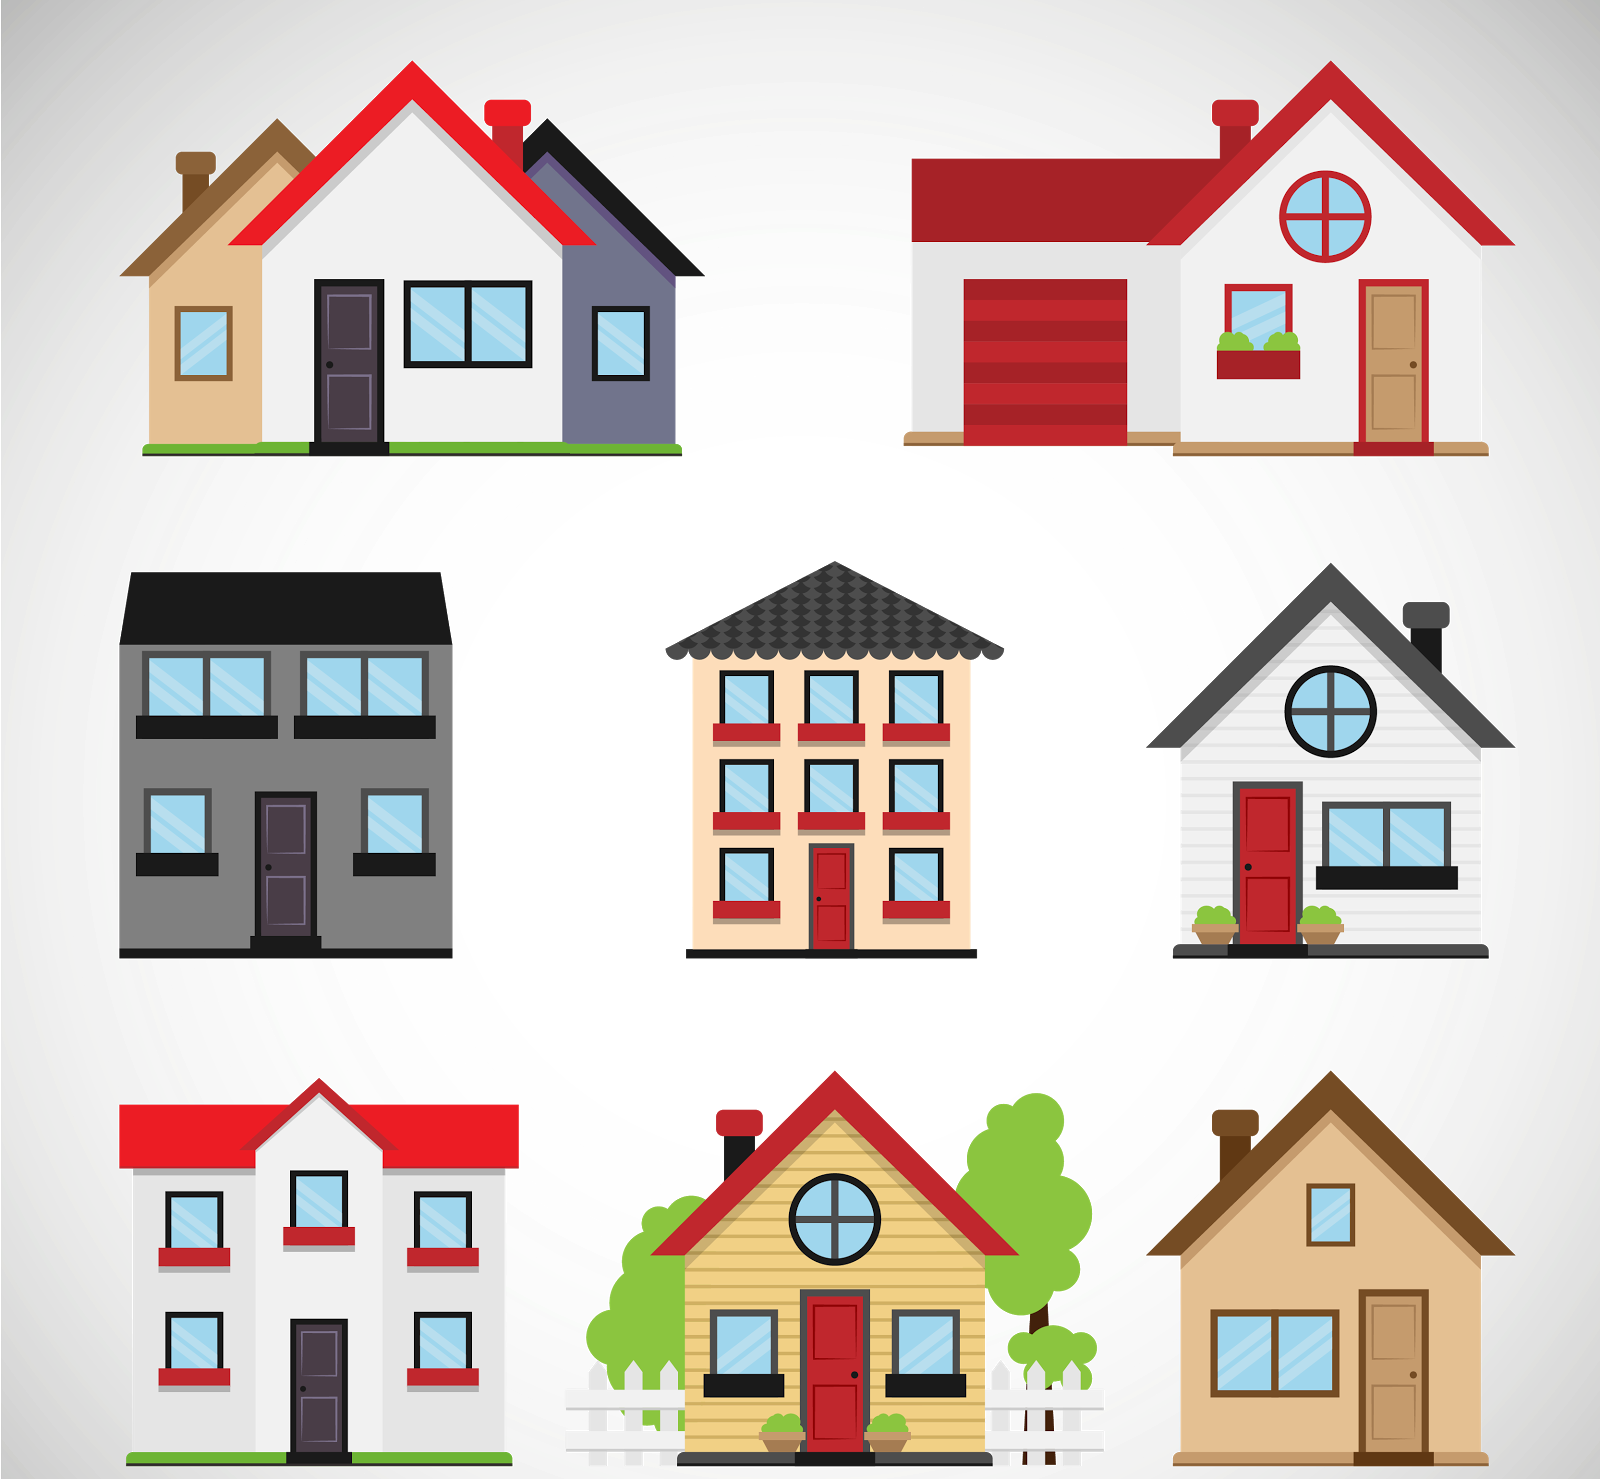 Legal and non responses. Clipart home housing development